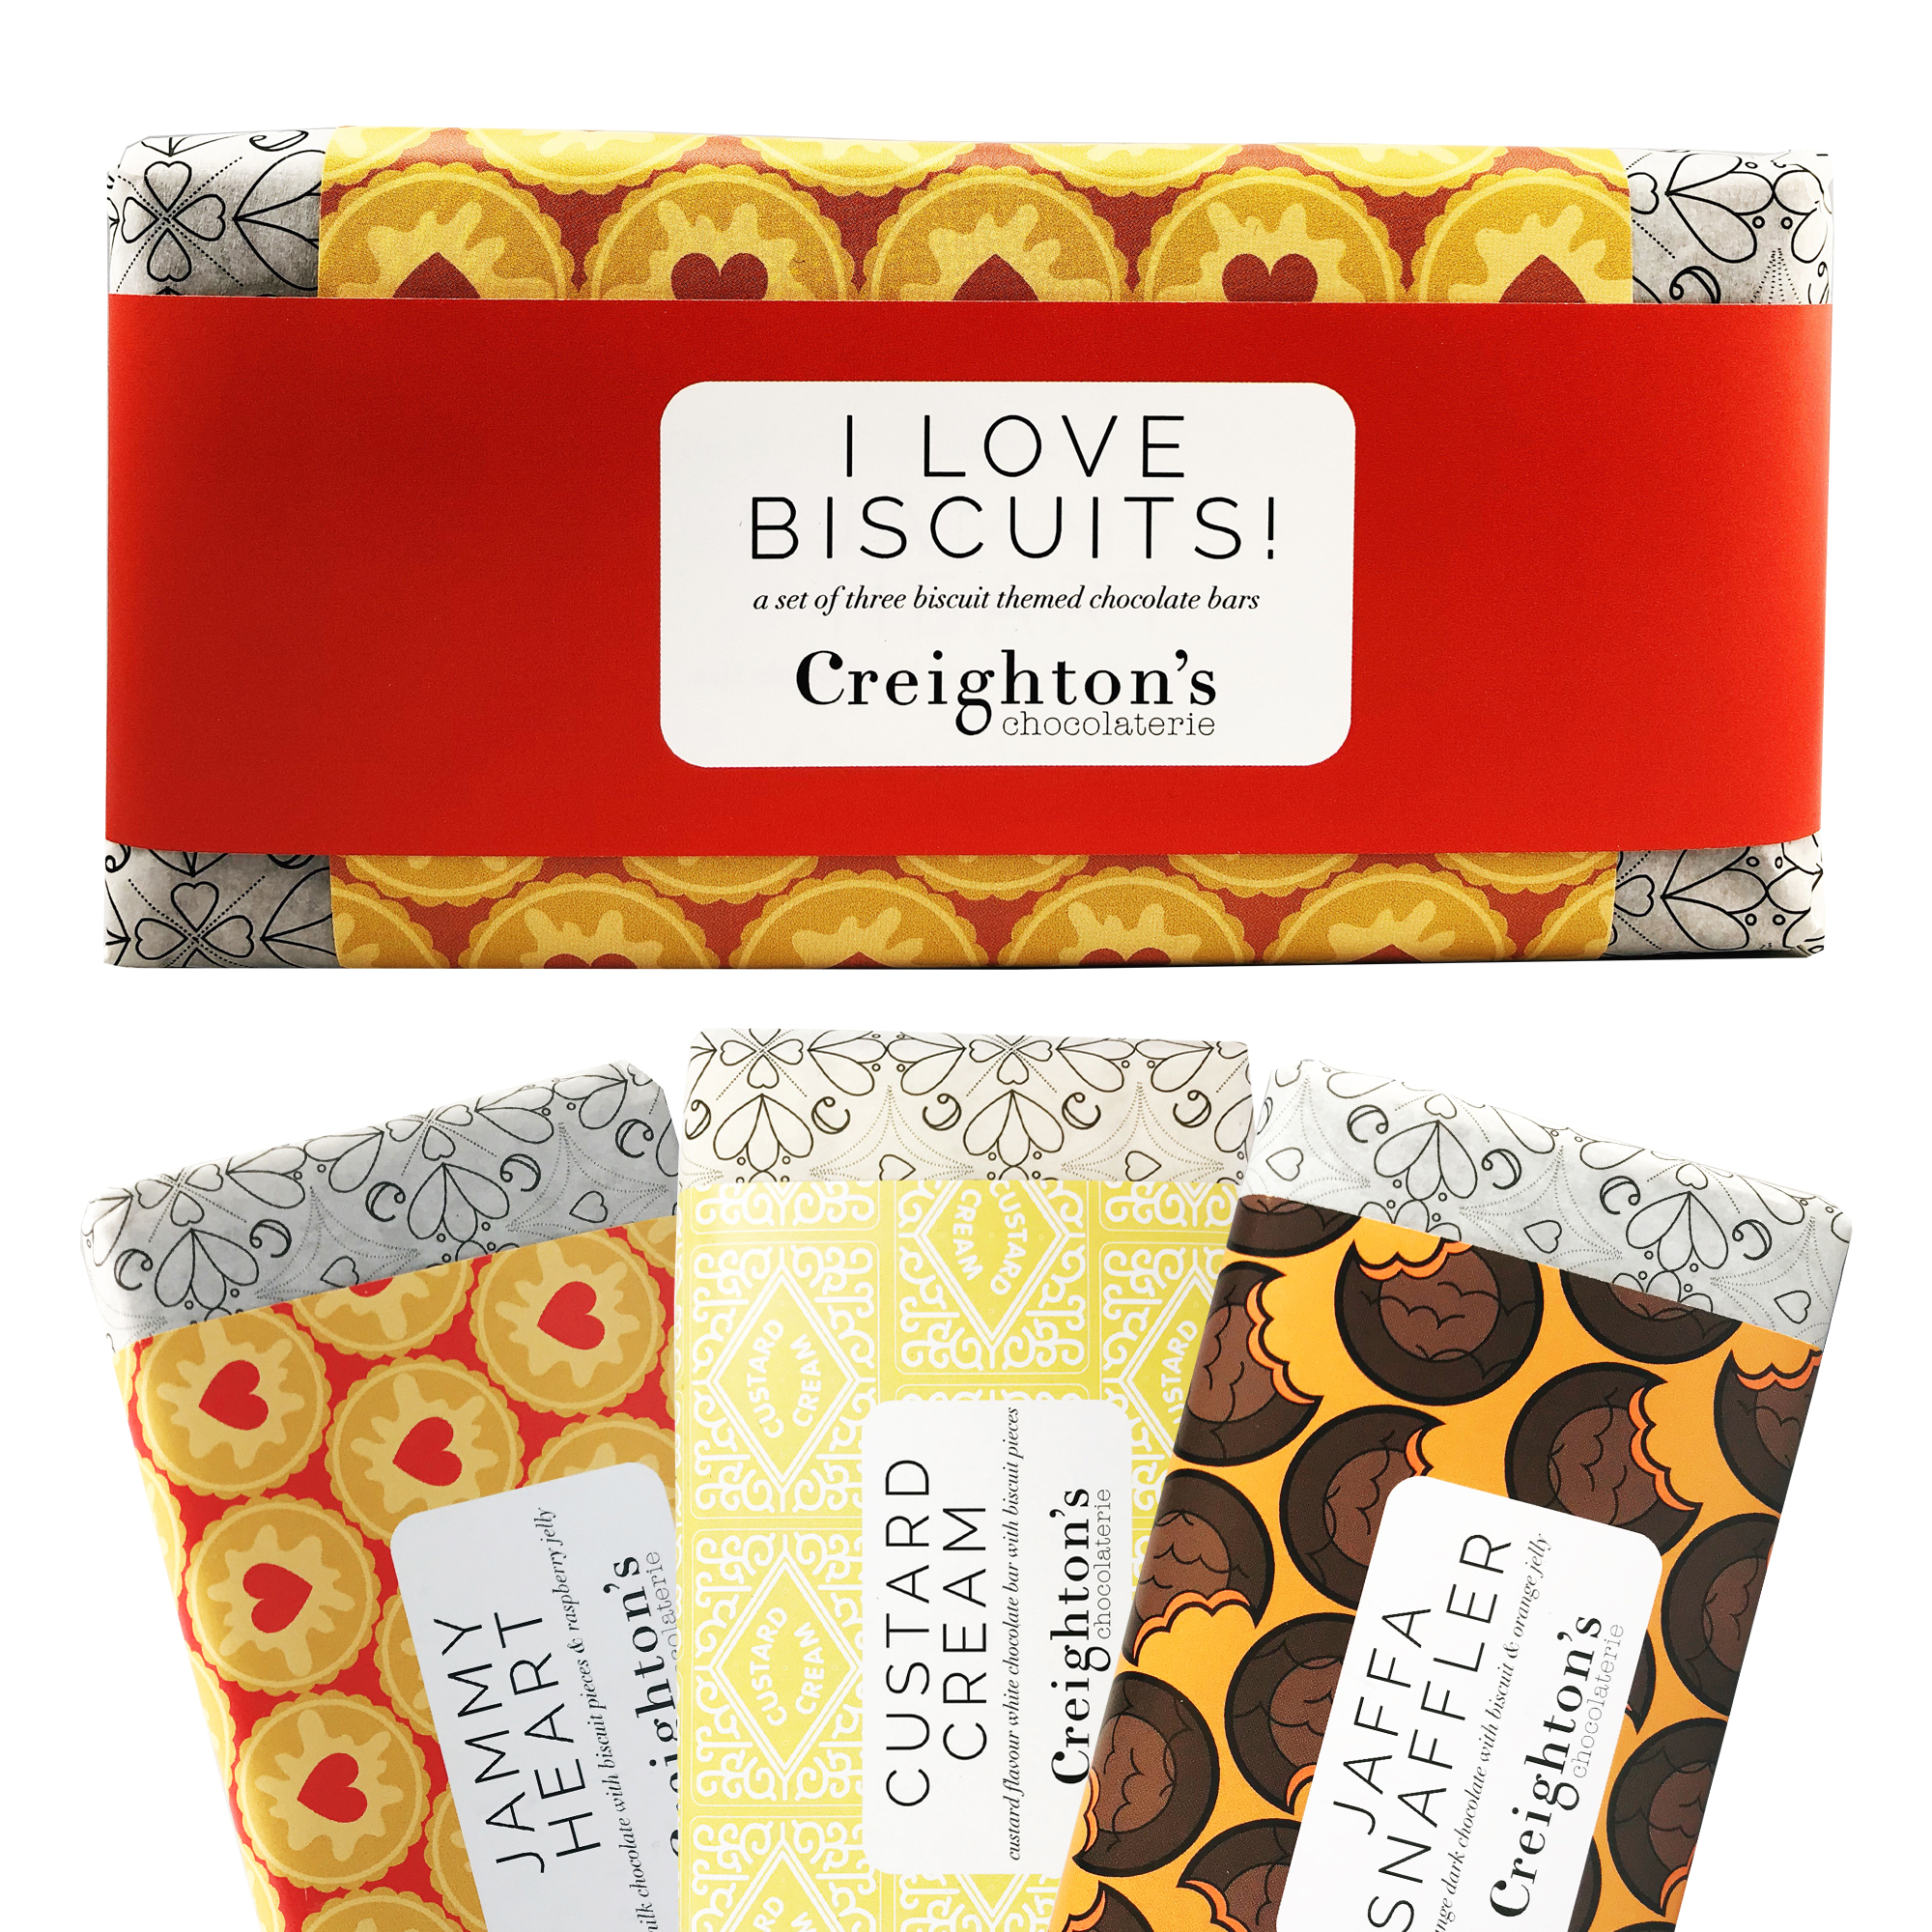 Creighton's Biscuit Chocolate gift set